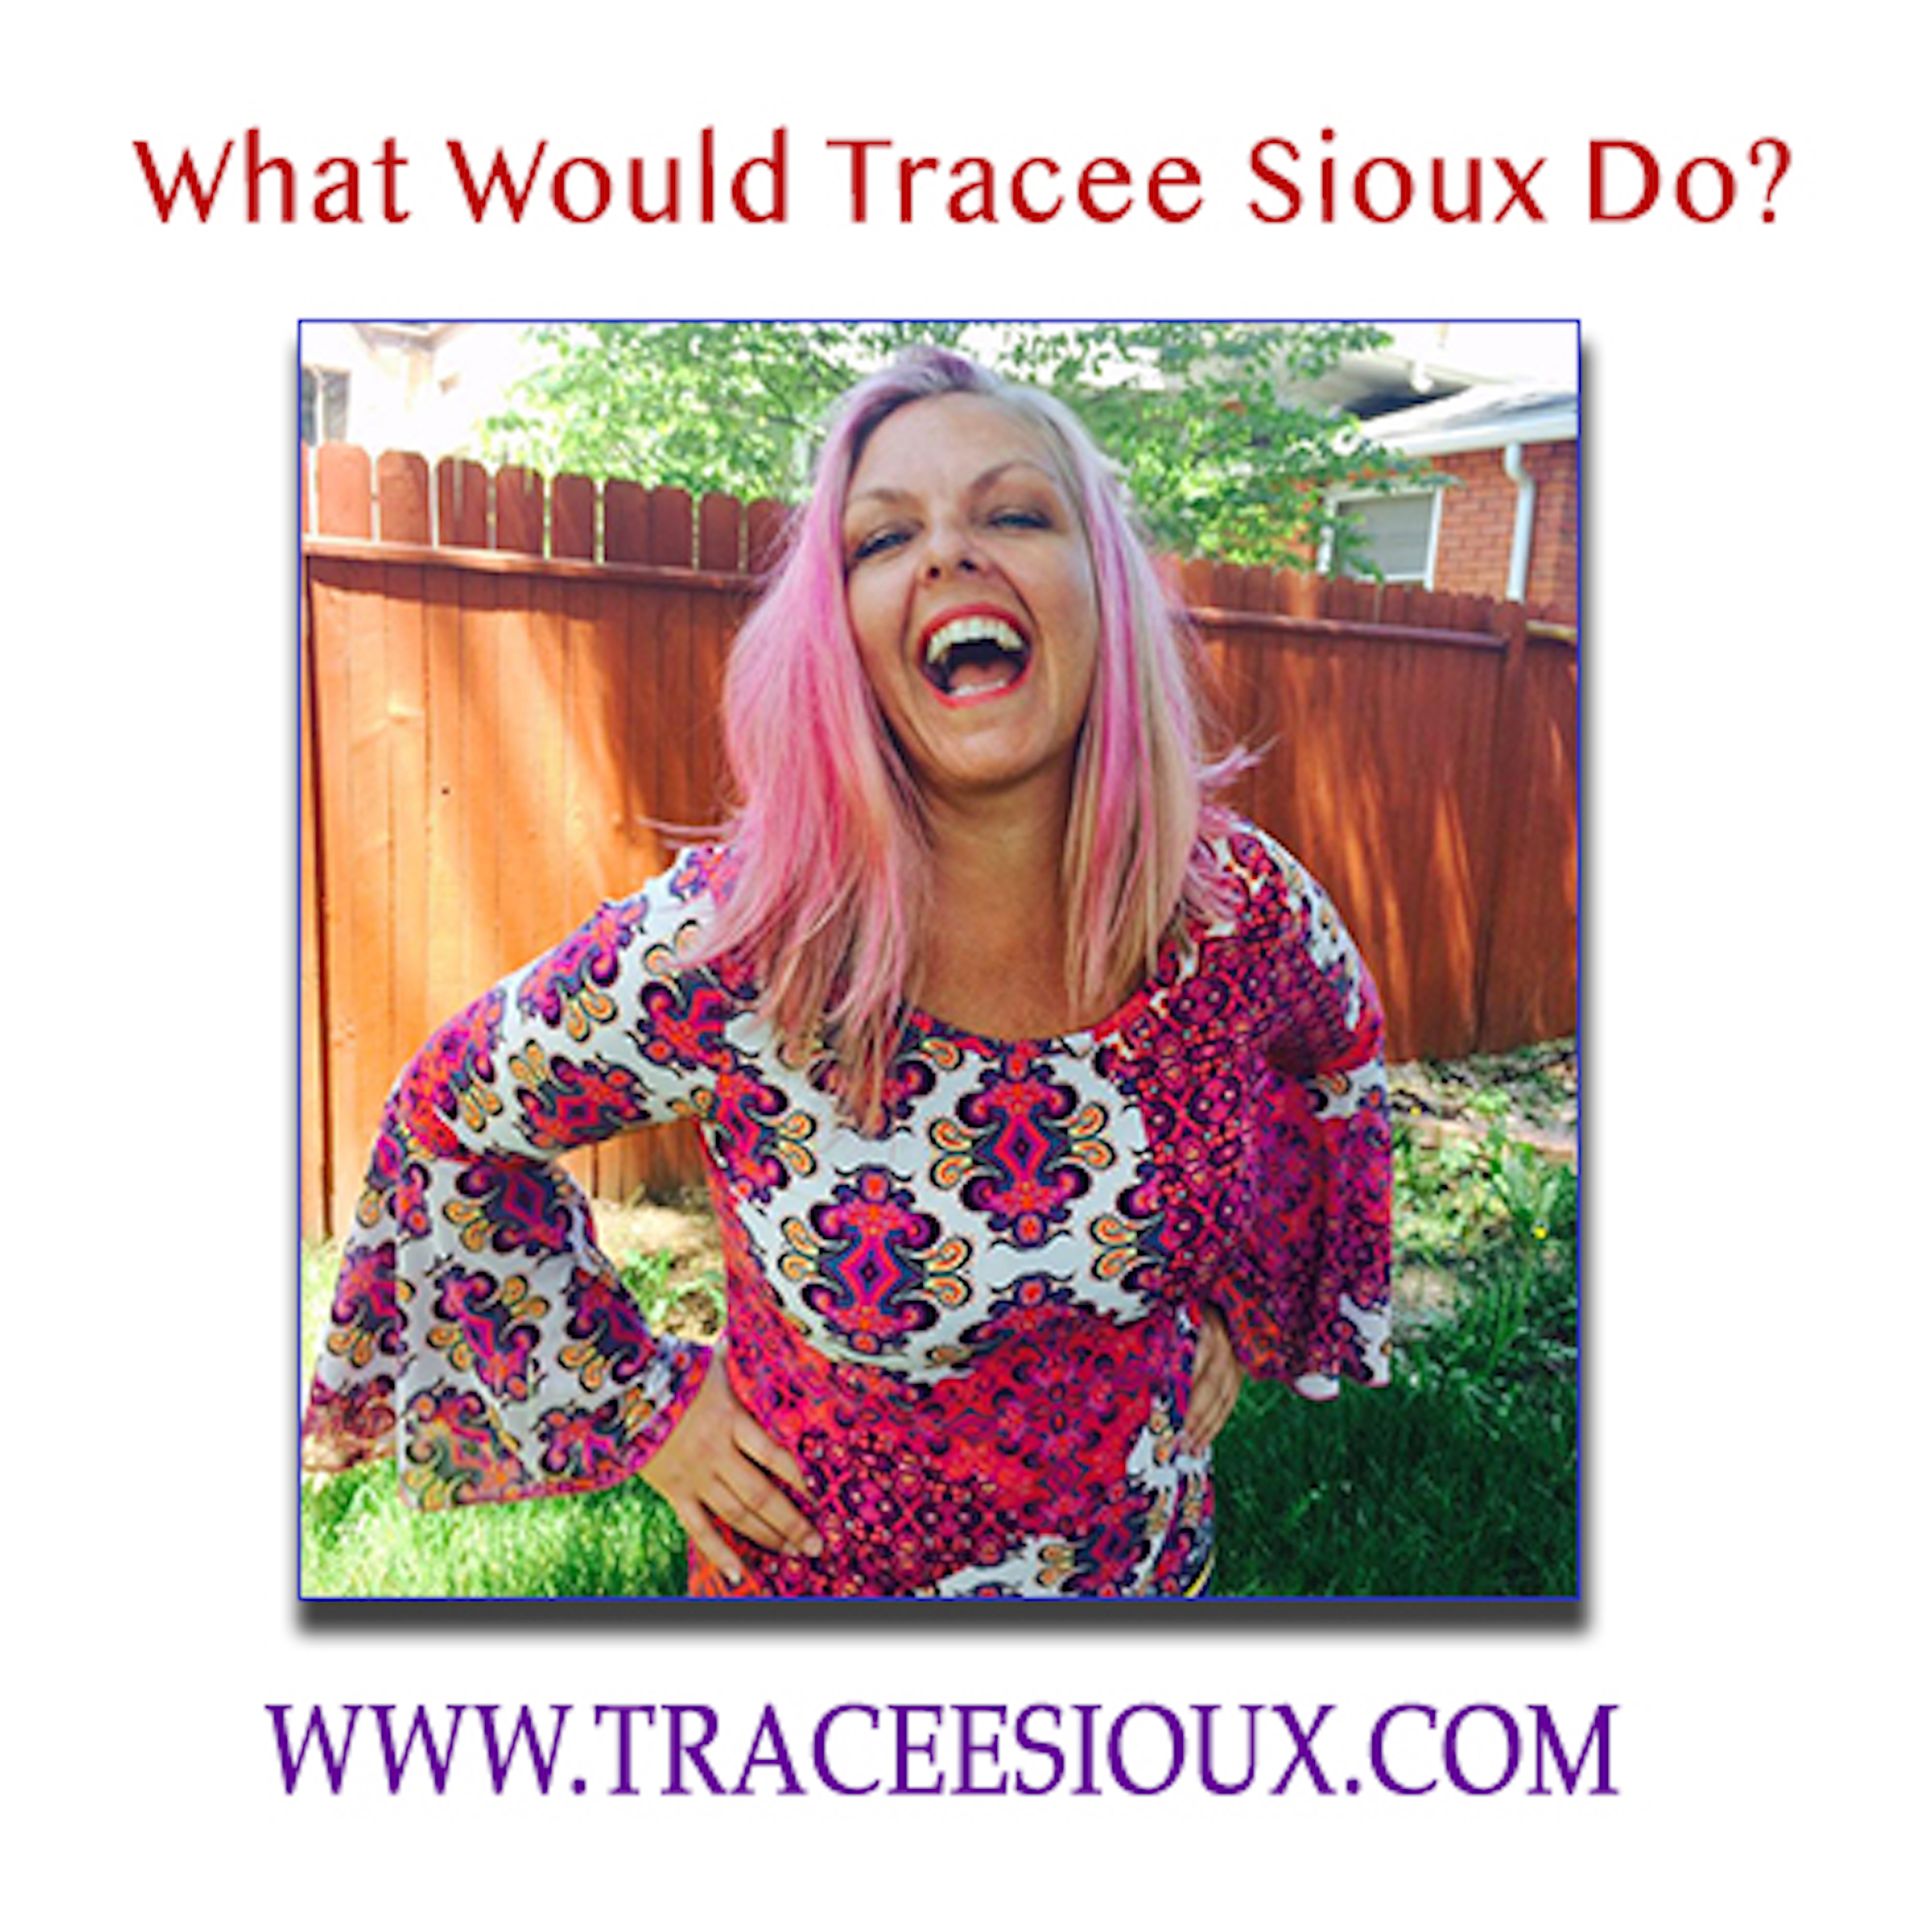 What Would Tracee Sioux Do?